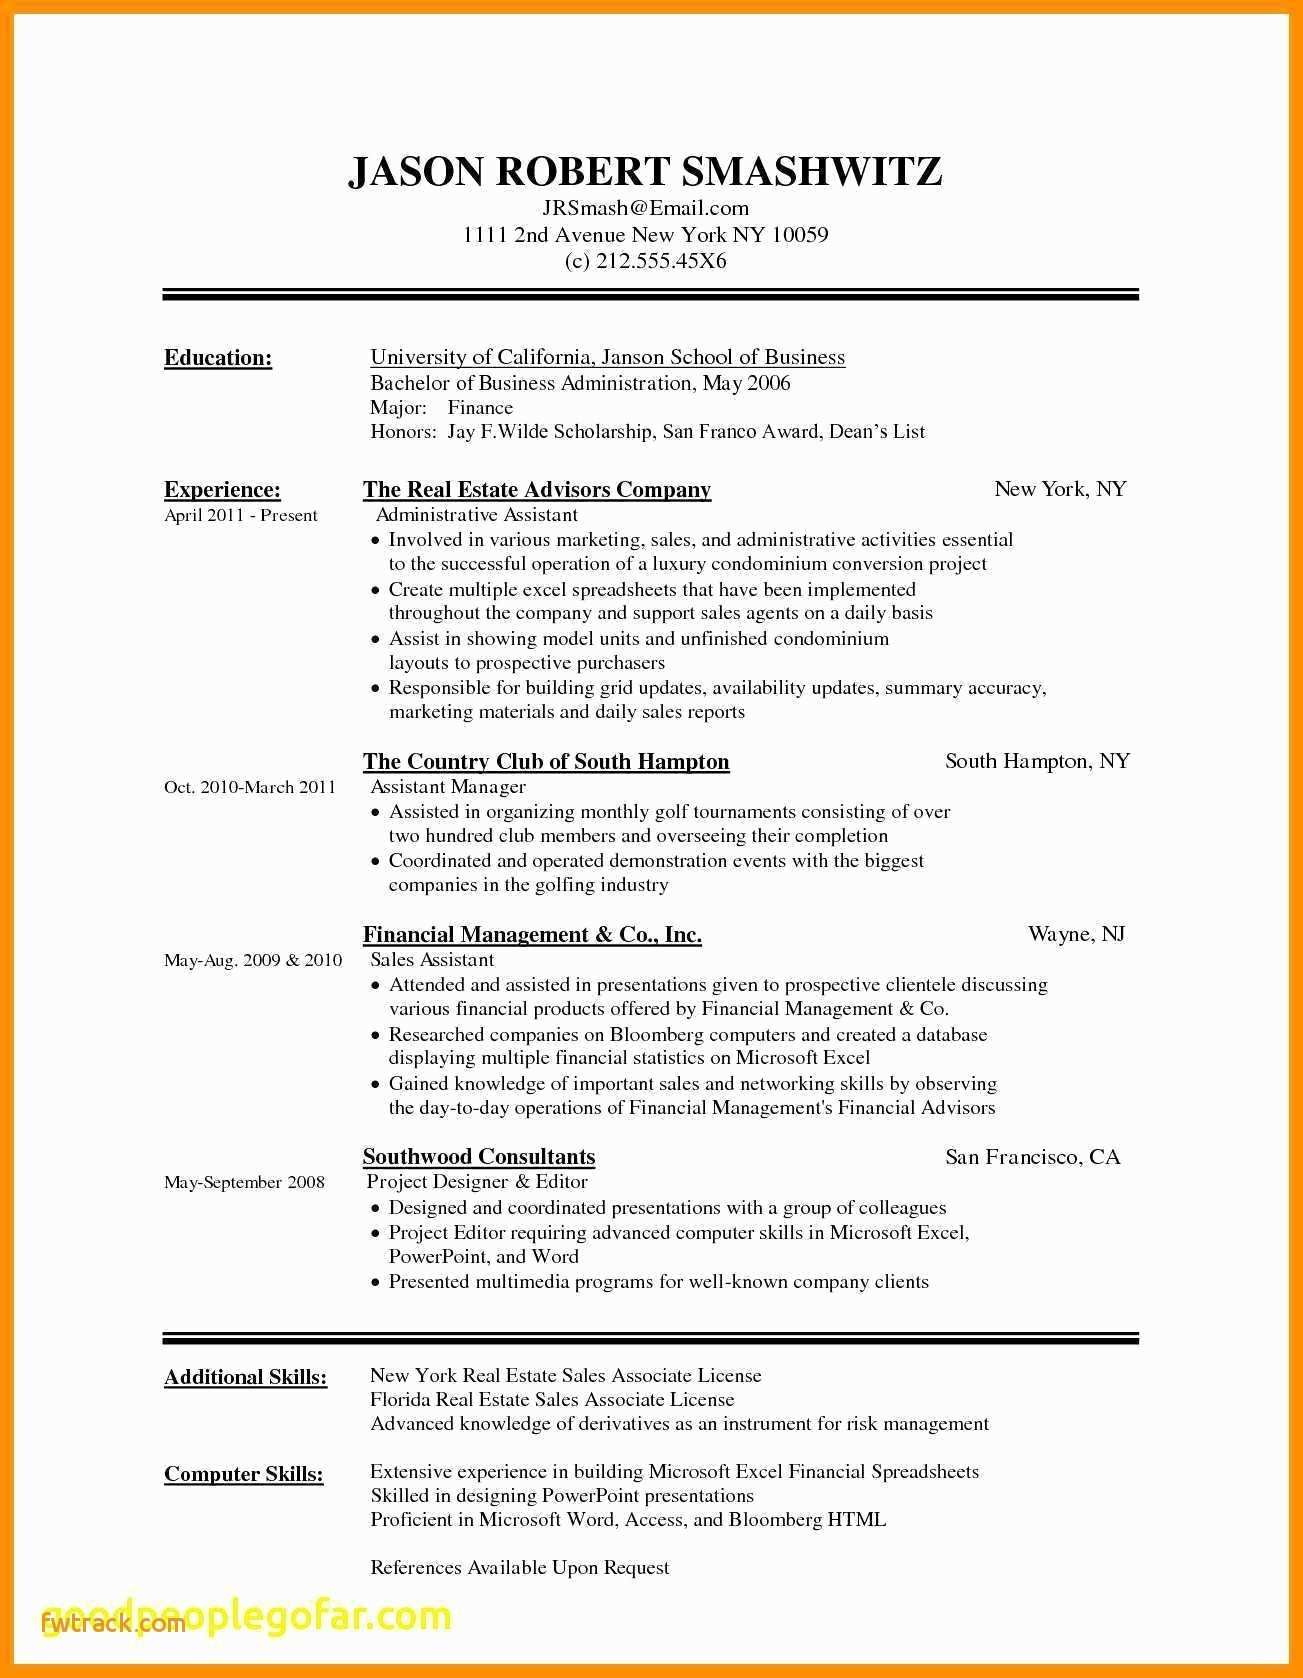 Sales Professional Resume Template - Resume Templates for Pages Fwtrack Fwtrack